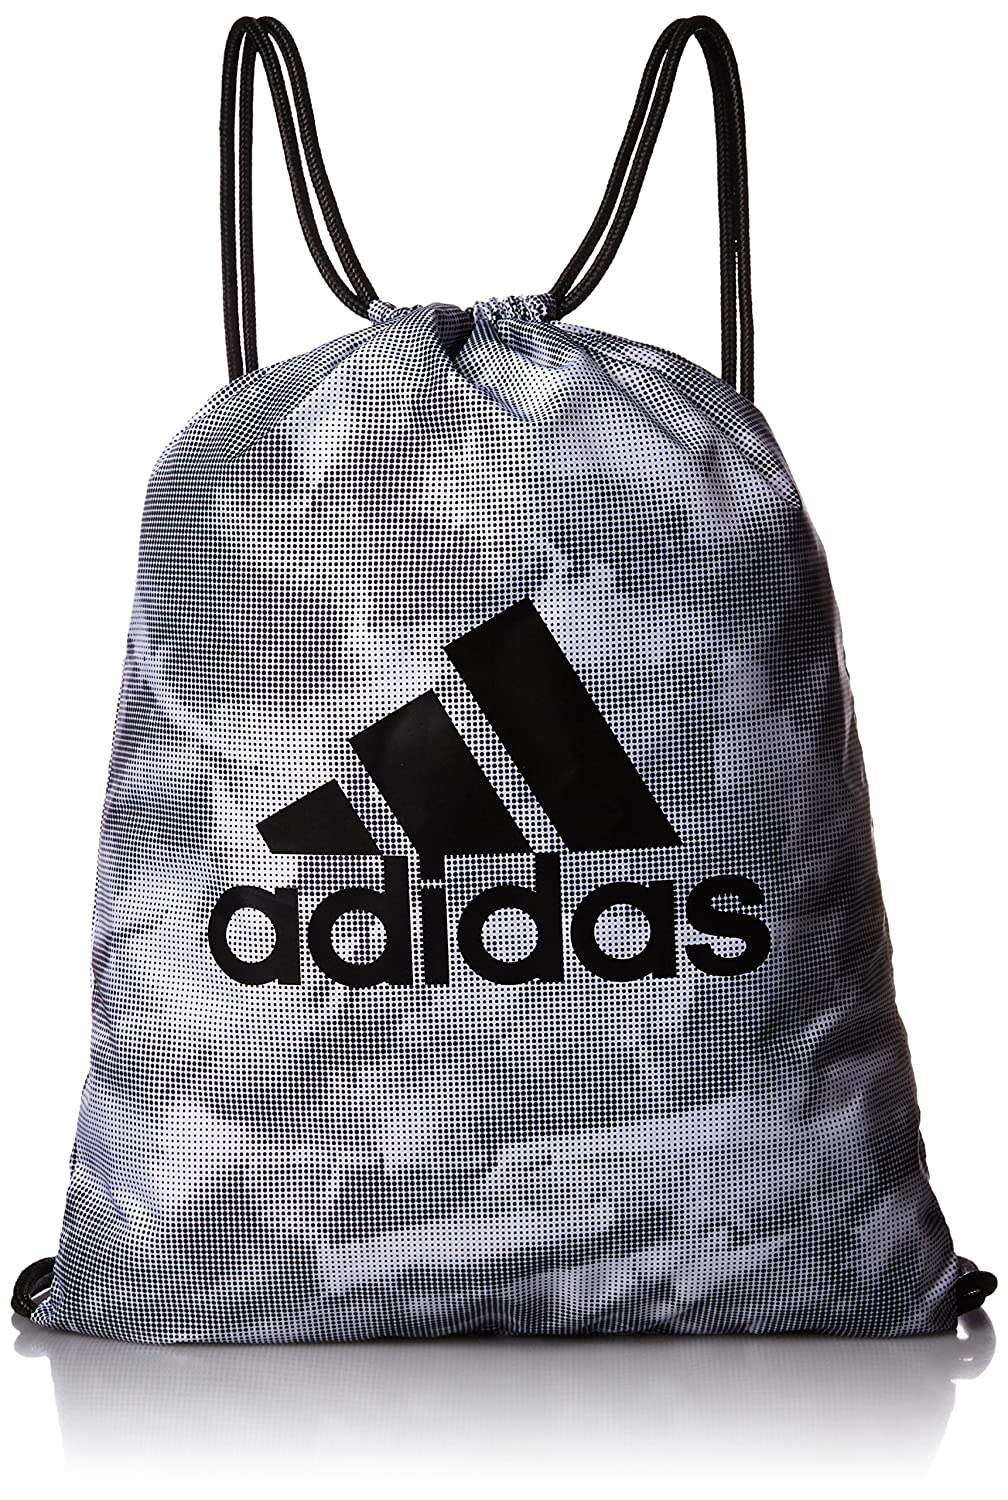 Ns Paper Adidas Gymbag UnisexColor BlanconegroTalla Bolso RjqS54A3cL